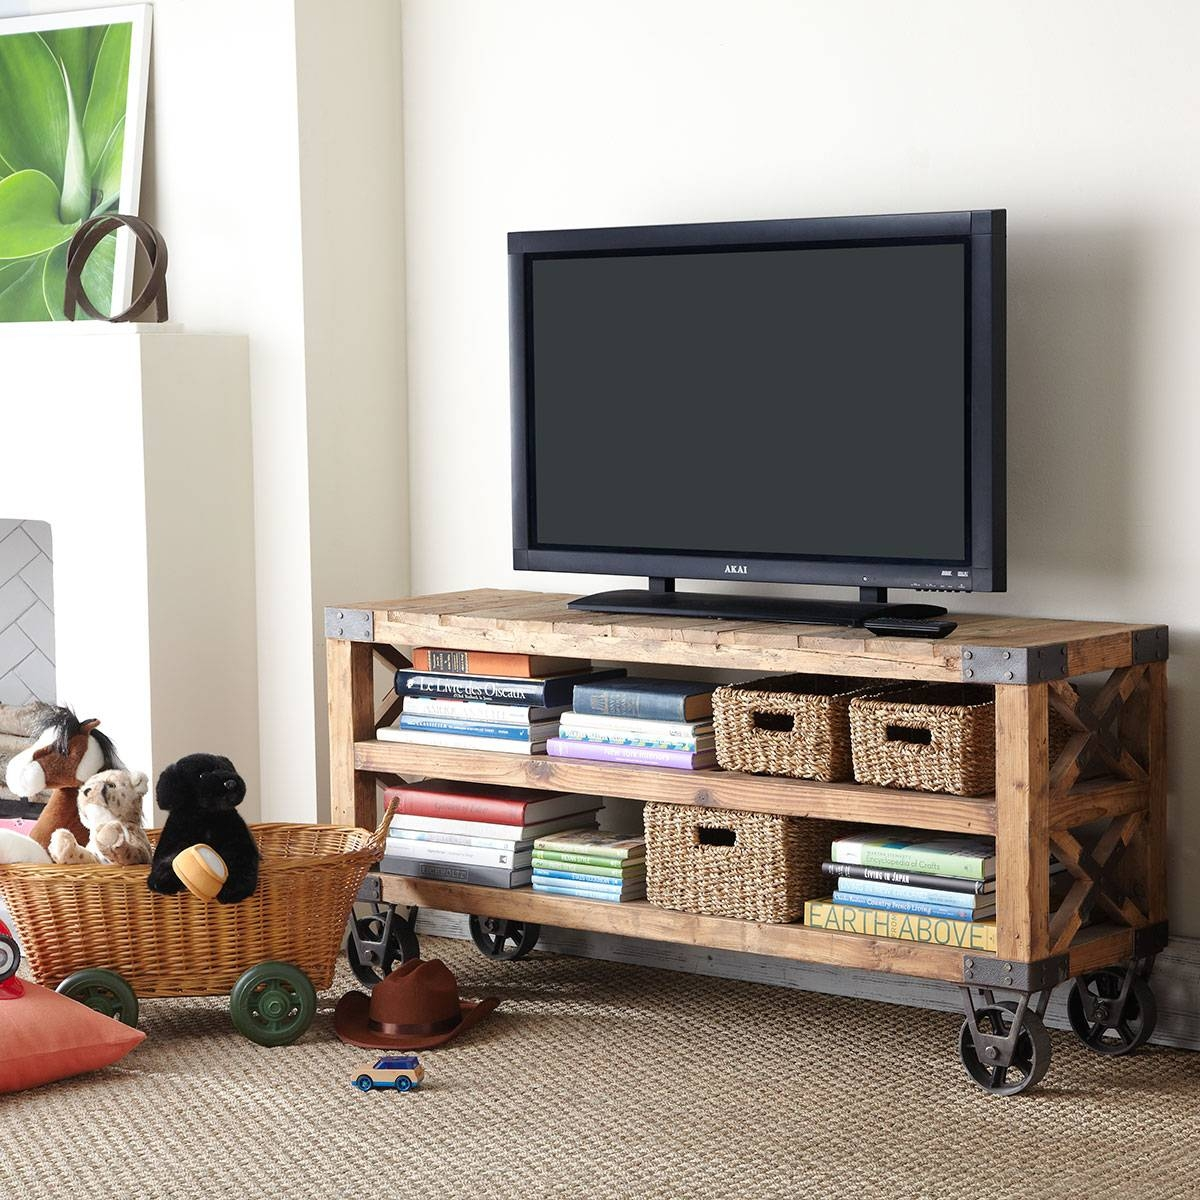 Cool Homemade Industrial Tv Stands With Wheels Made From Reclaimed inside Reclaimed Wood And Metal Tv Stands (Image 10 of 15)